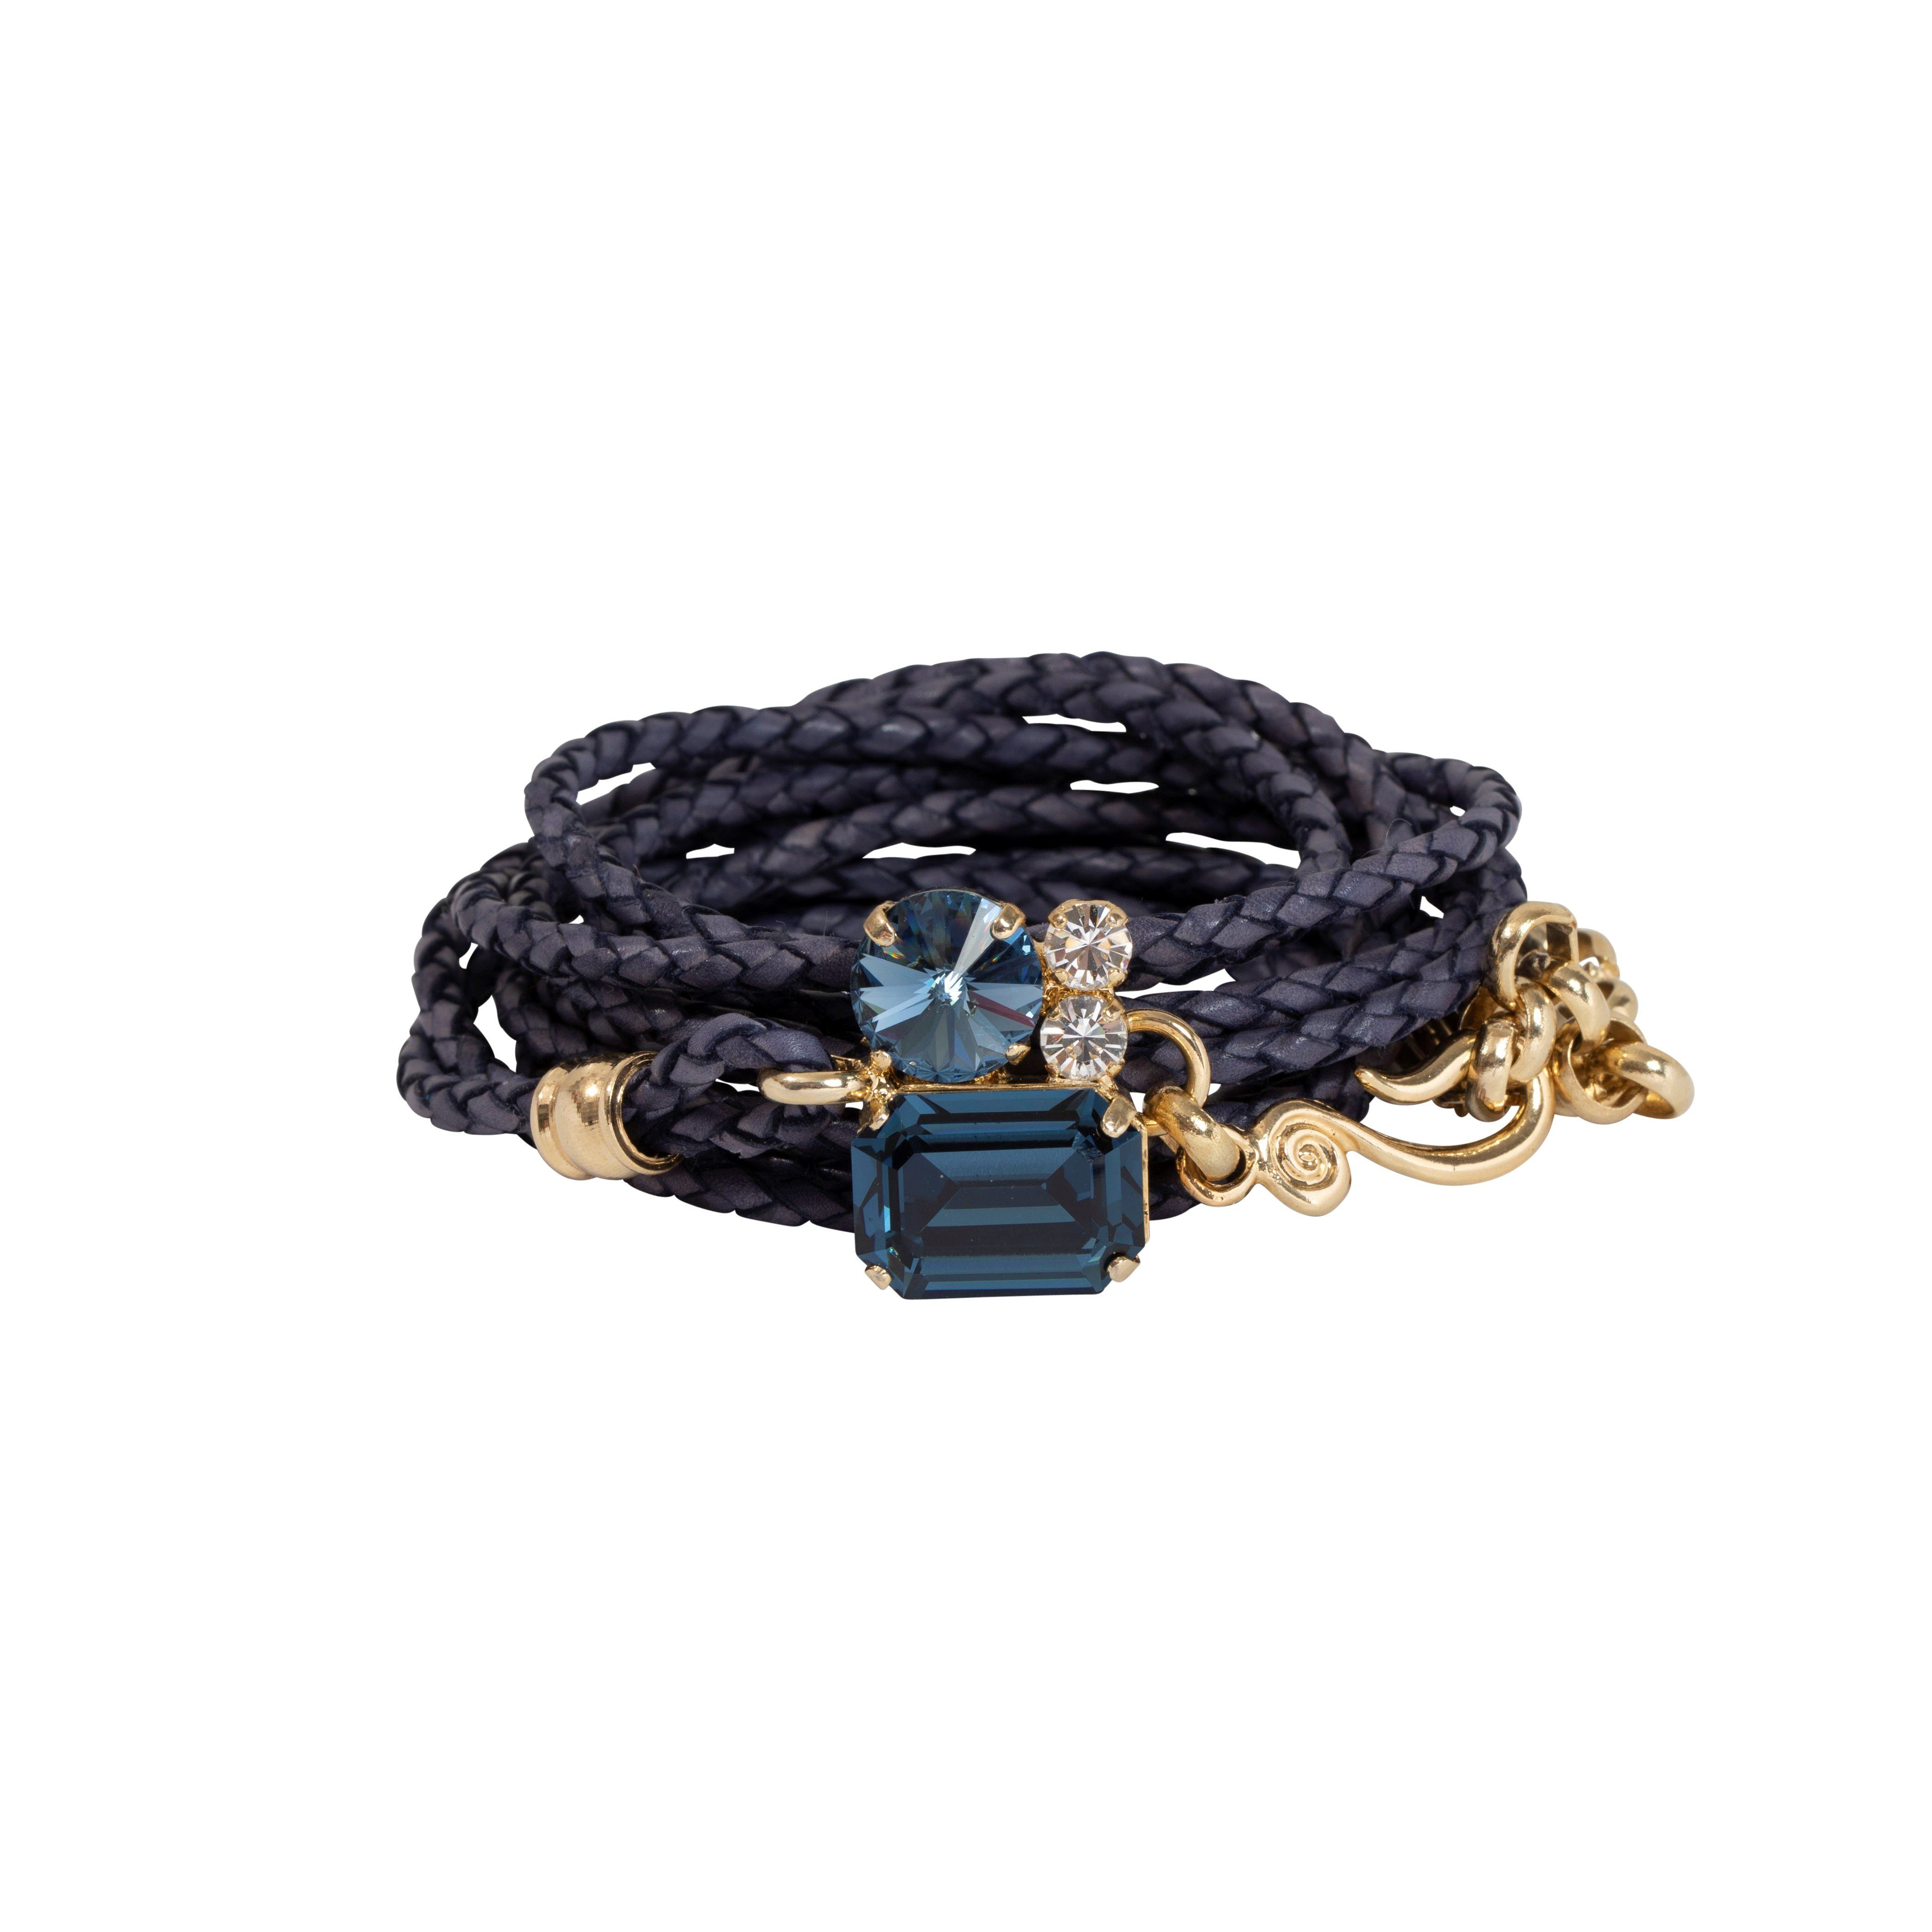 Indigo Leather Bracelet - Rich Blue